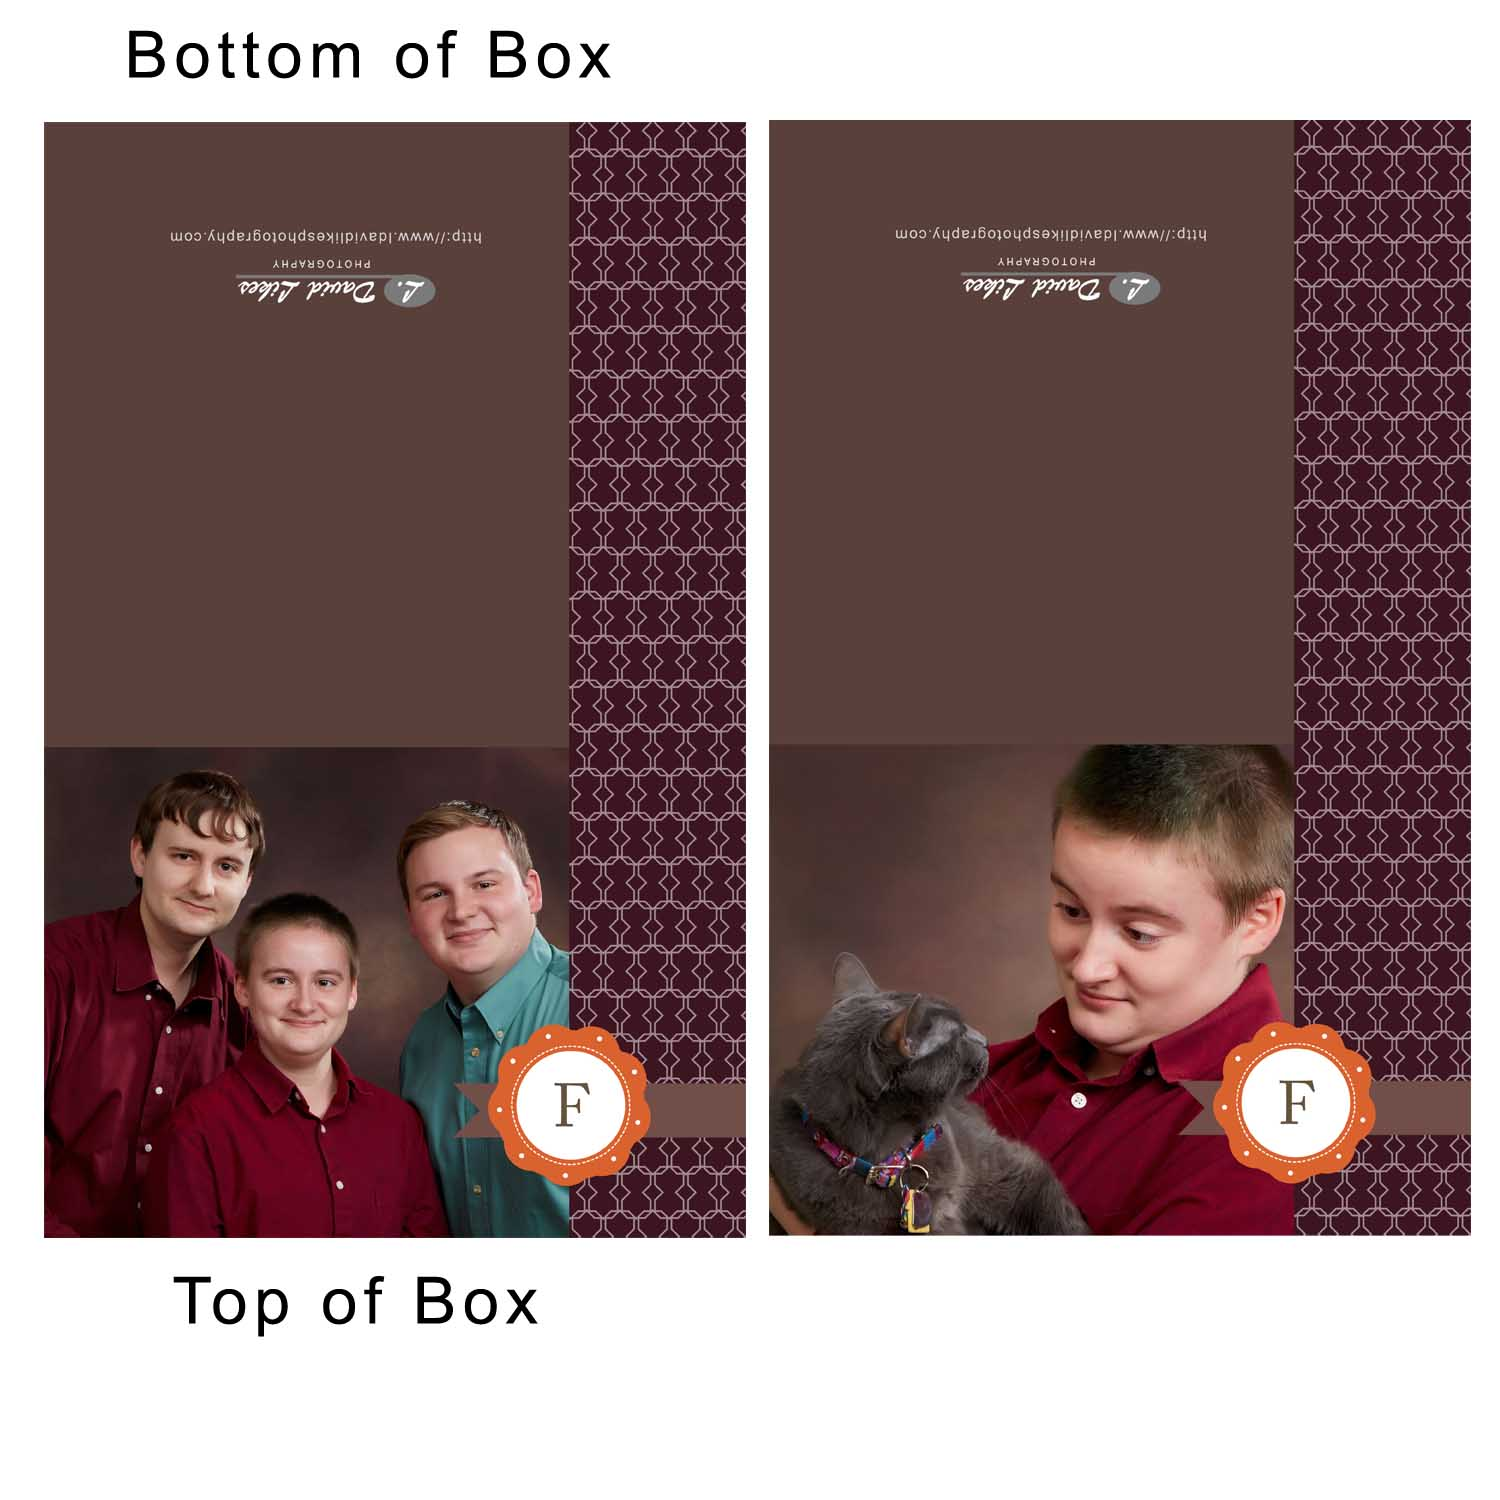 Two Image Box Designs (Left is the Father's Box, Right is the Daughters Box Design)